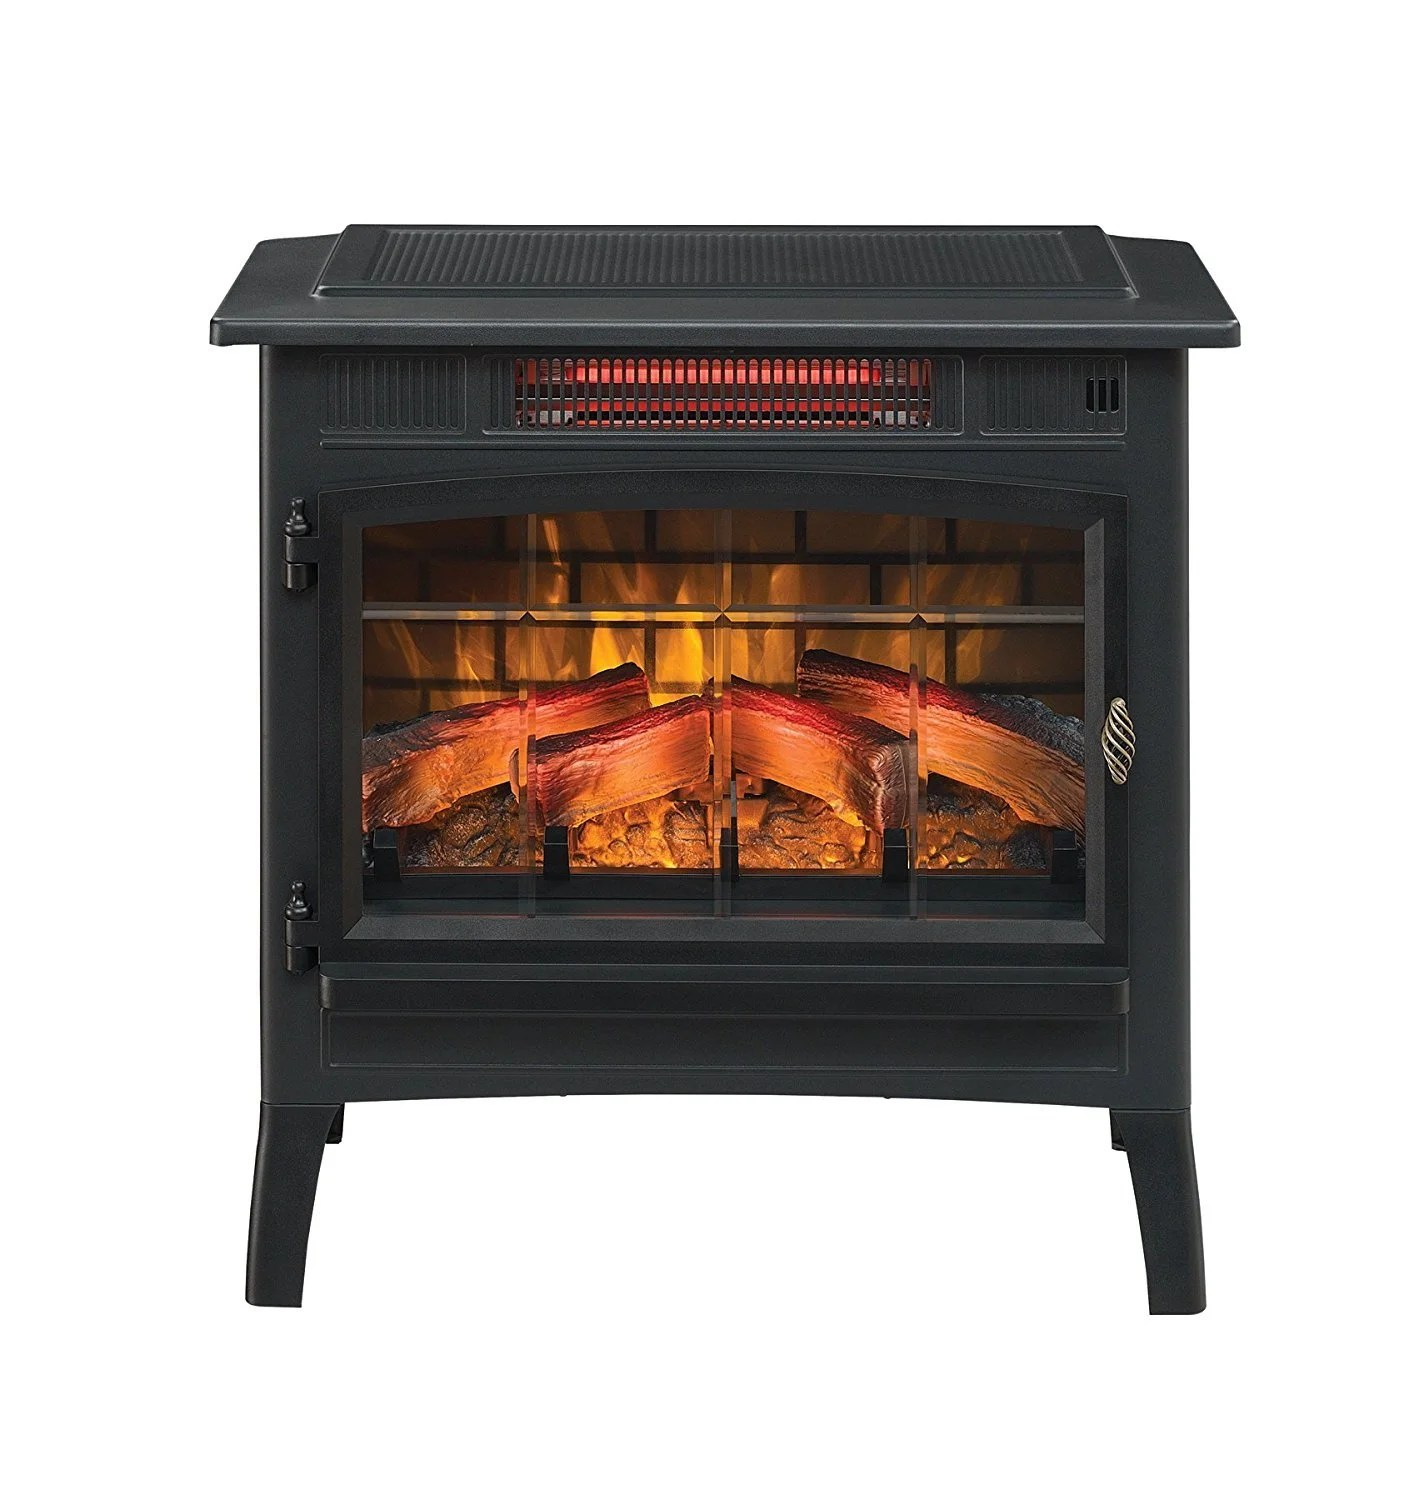 Space Heaters Fireplace Duraflame Portable Infrared Electric Fireplace Stove Dfi 5010